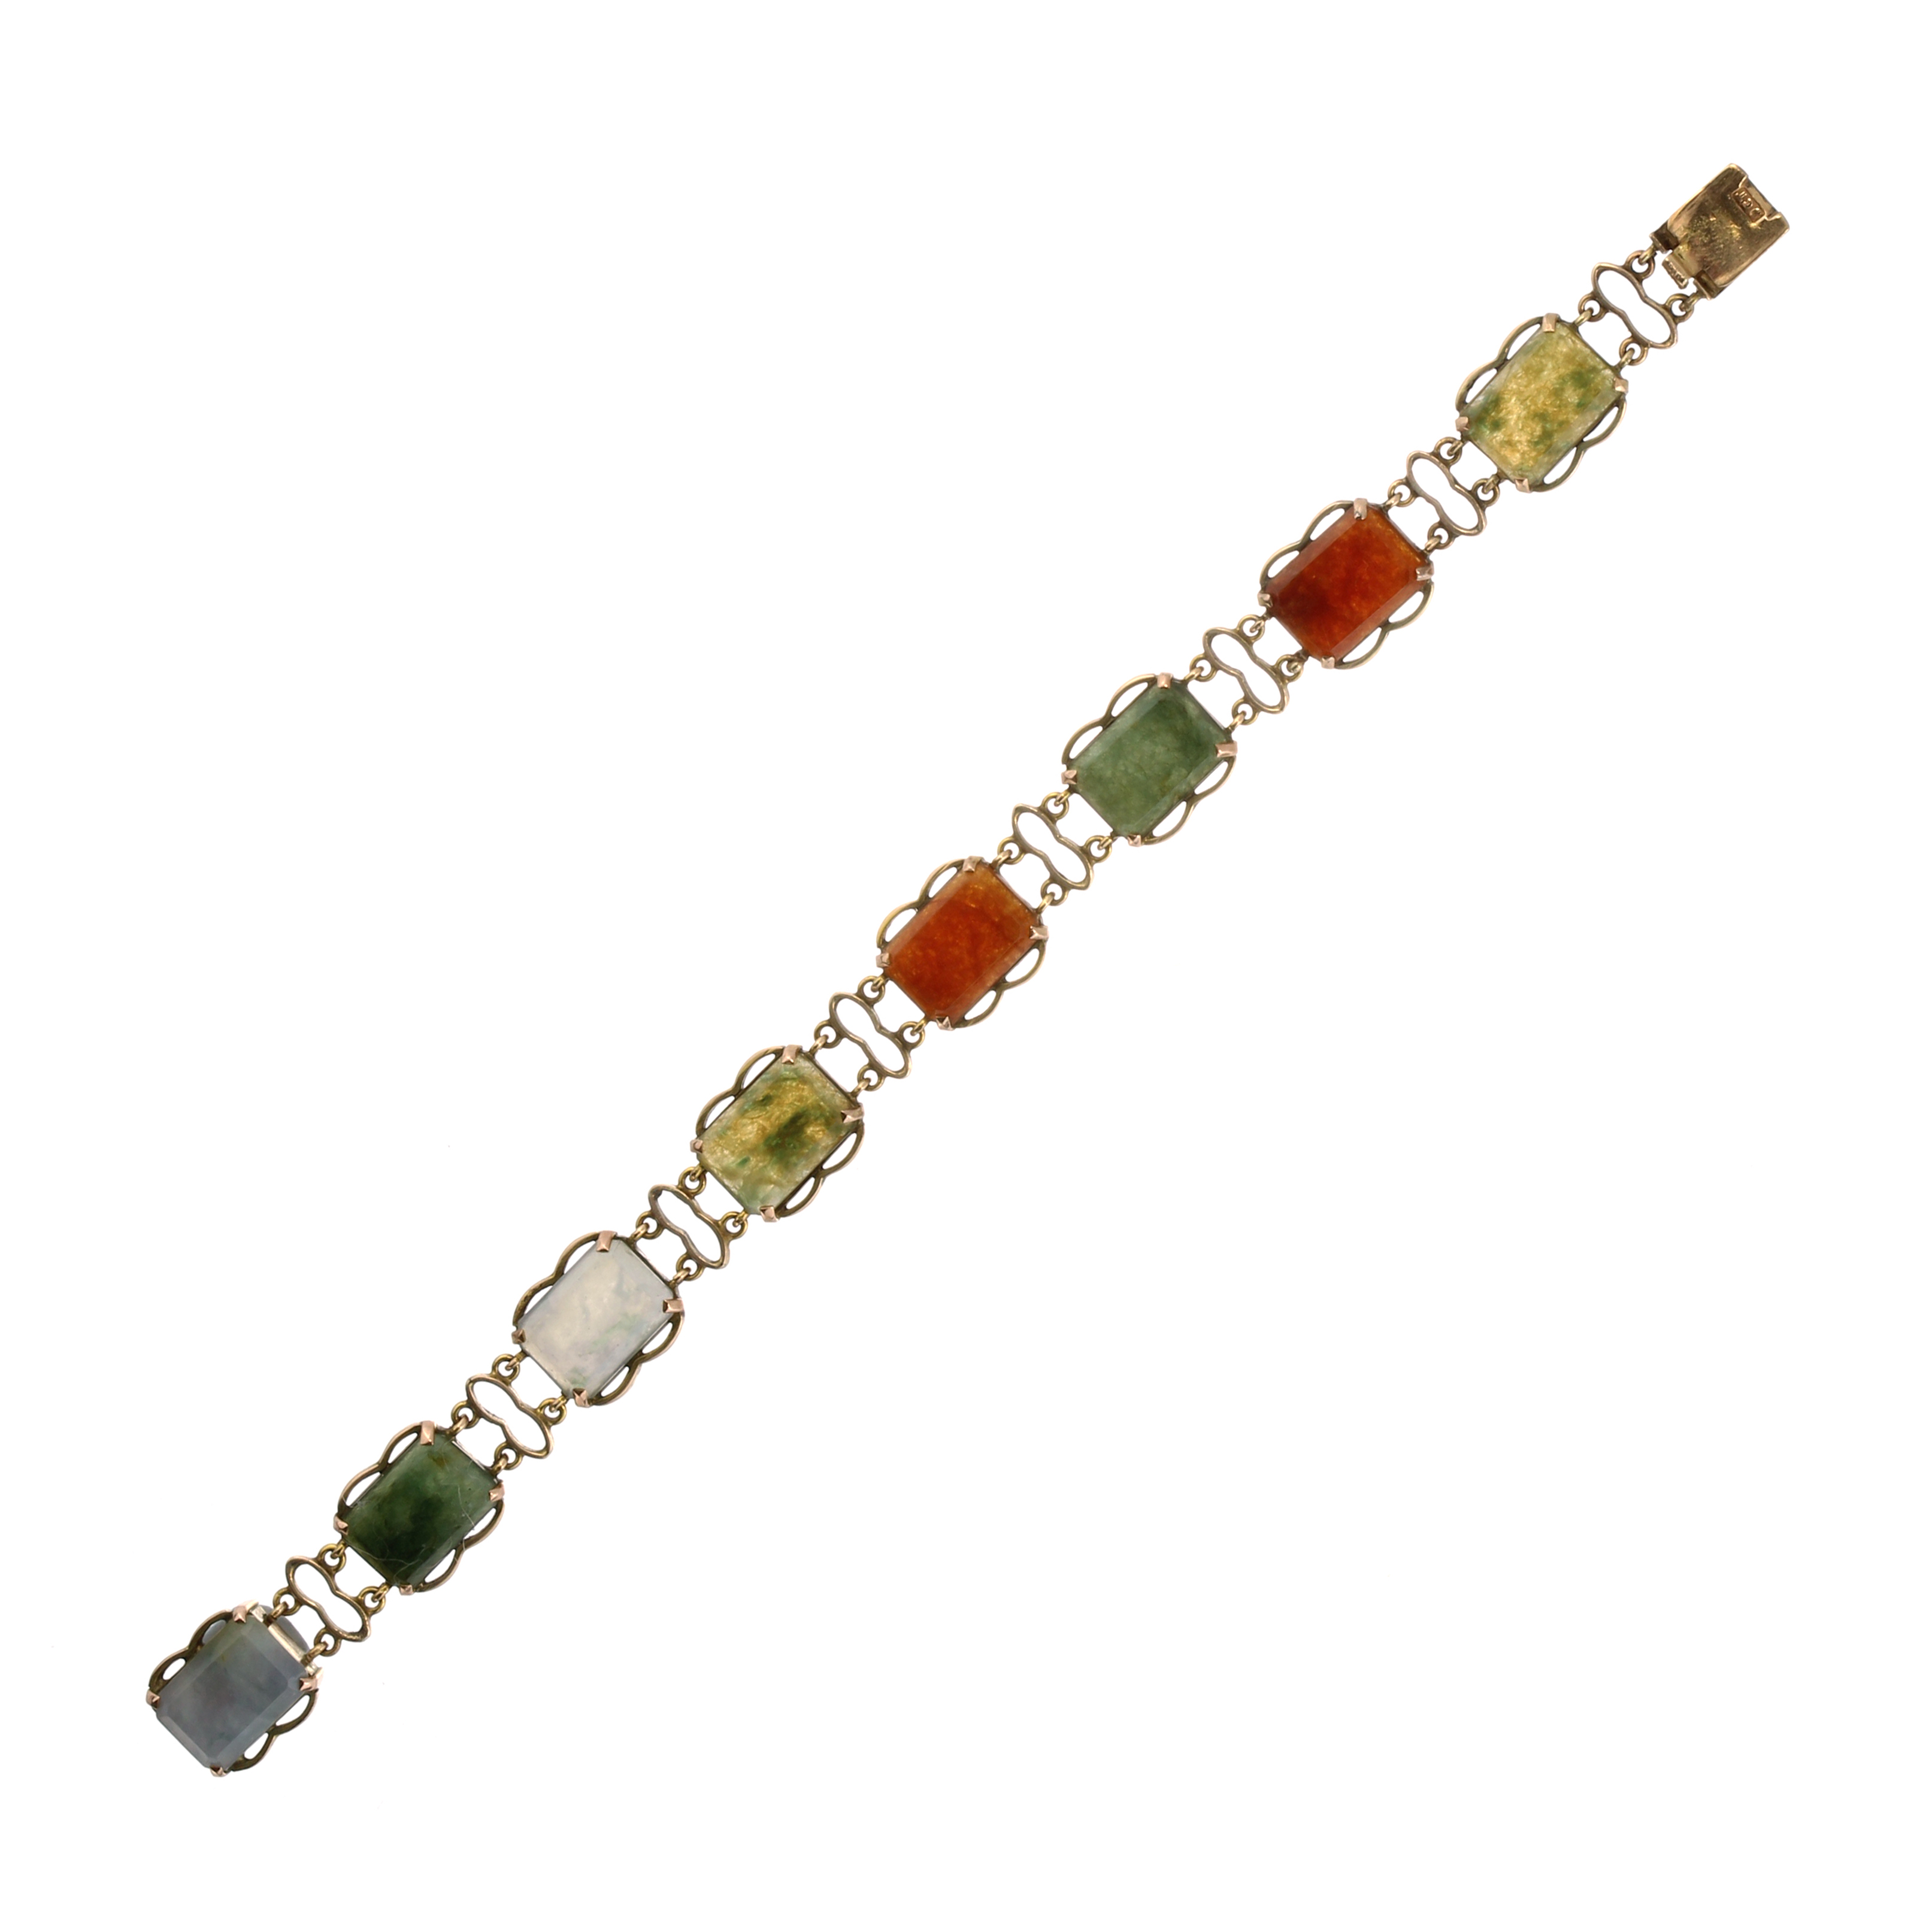 Los 12 - An antique Scottish agate bracelet in 9ct yellow gold designed as a single row of eight cut cornered